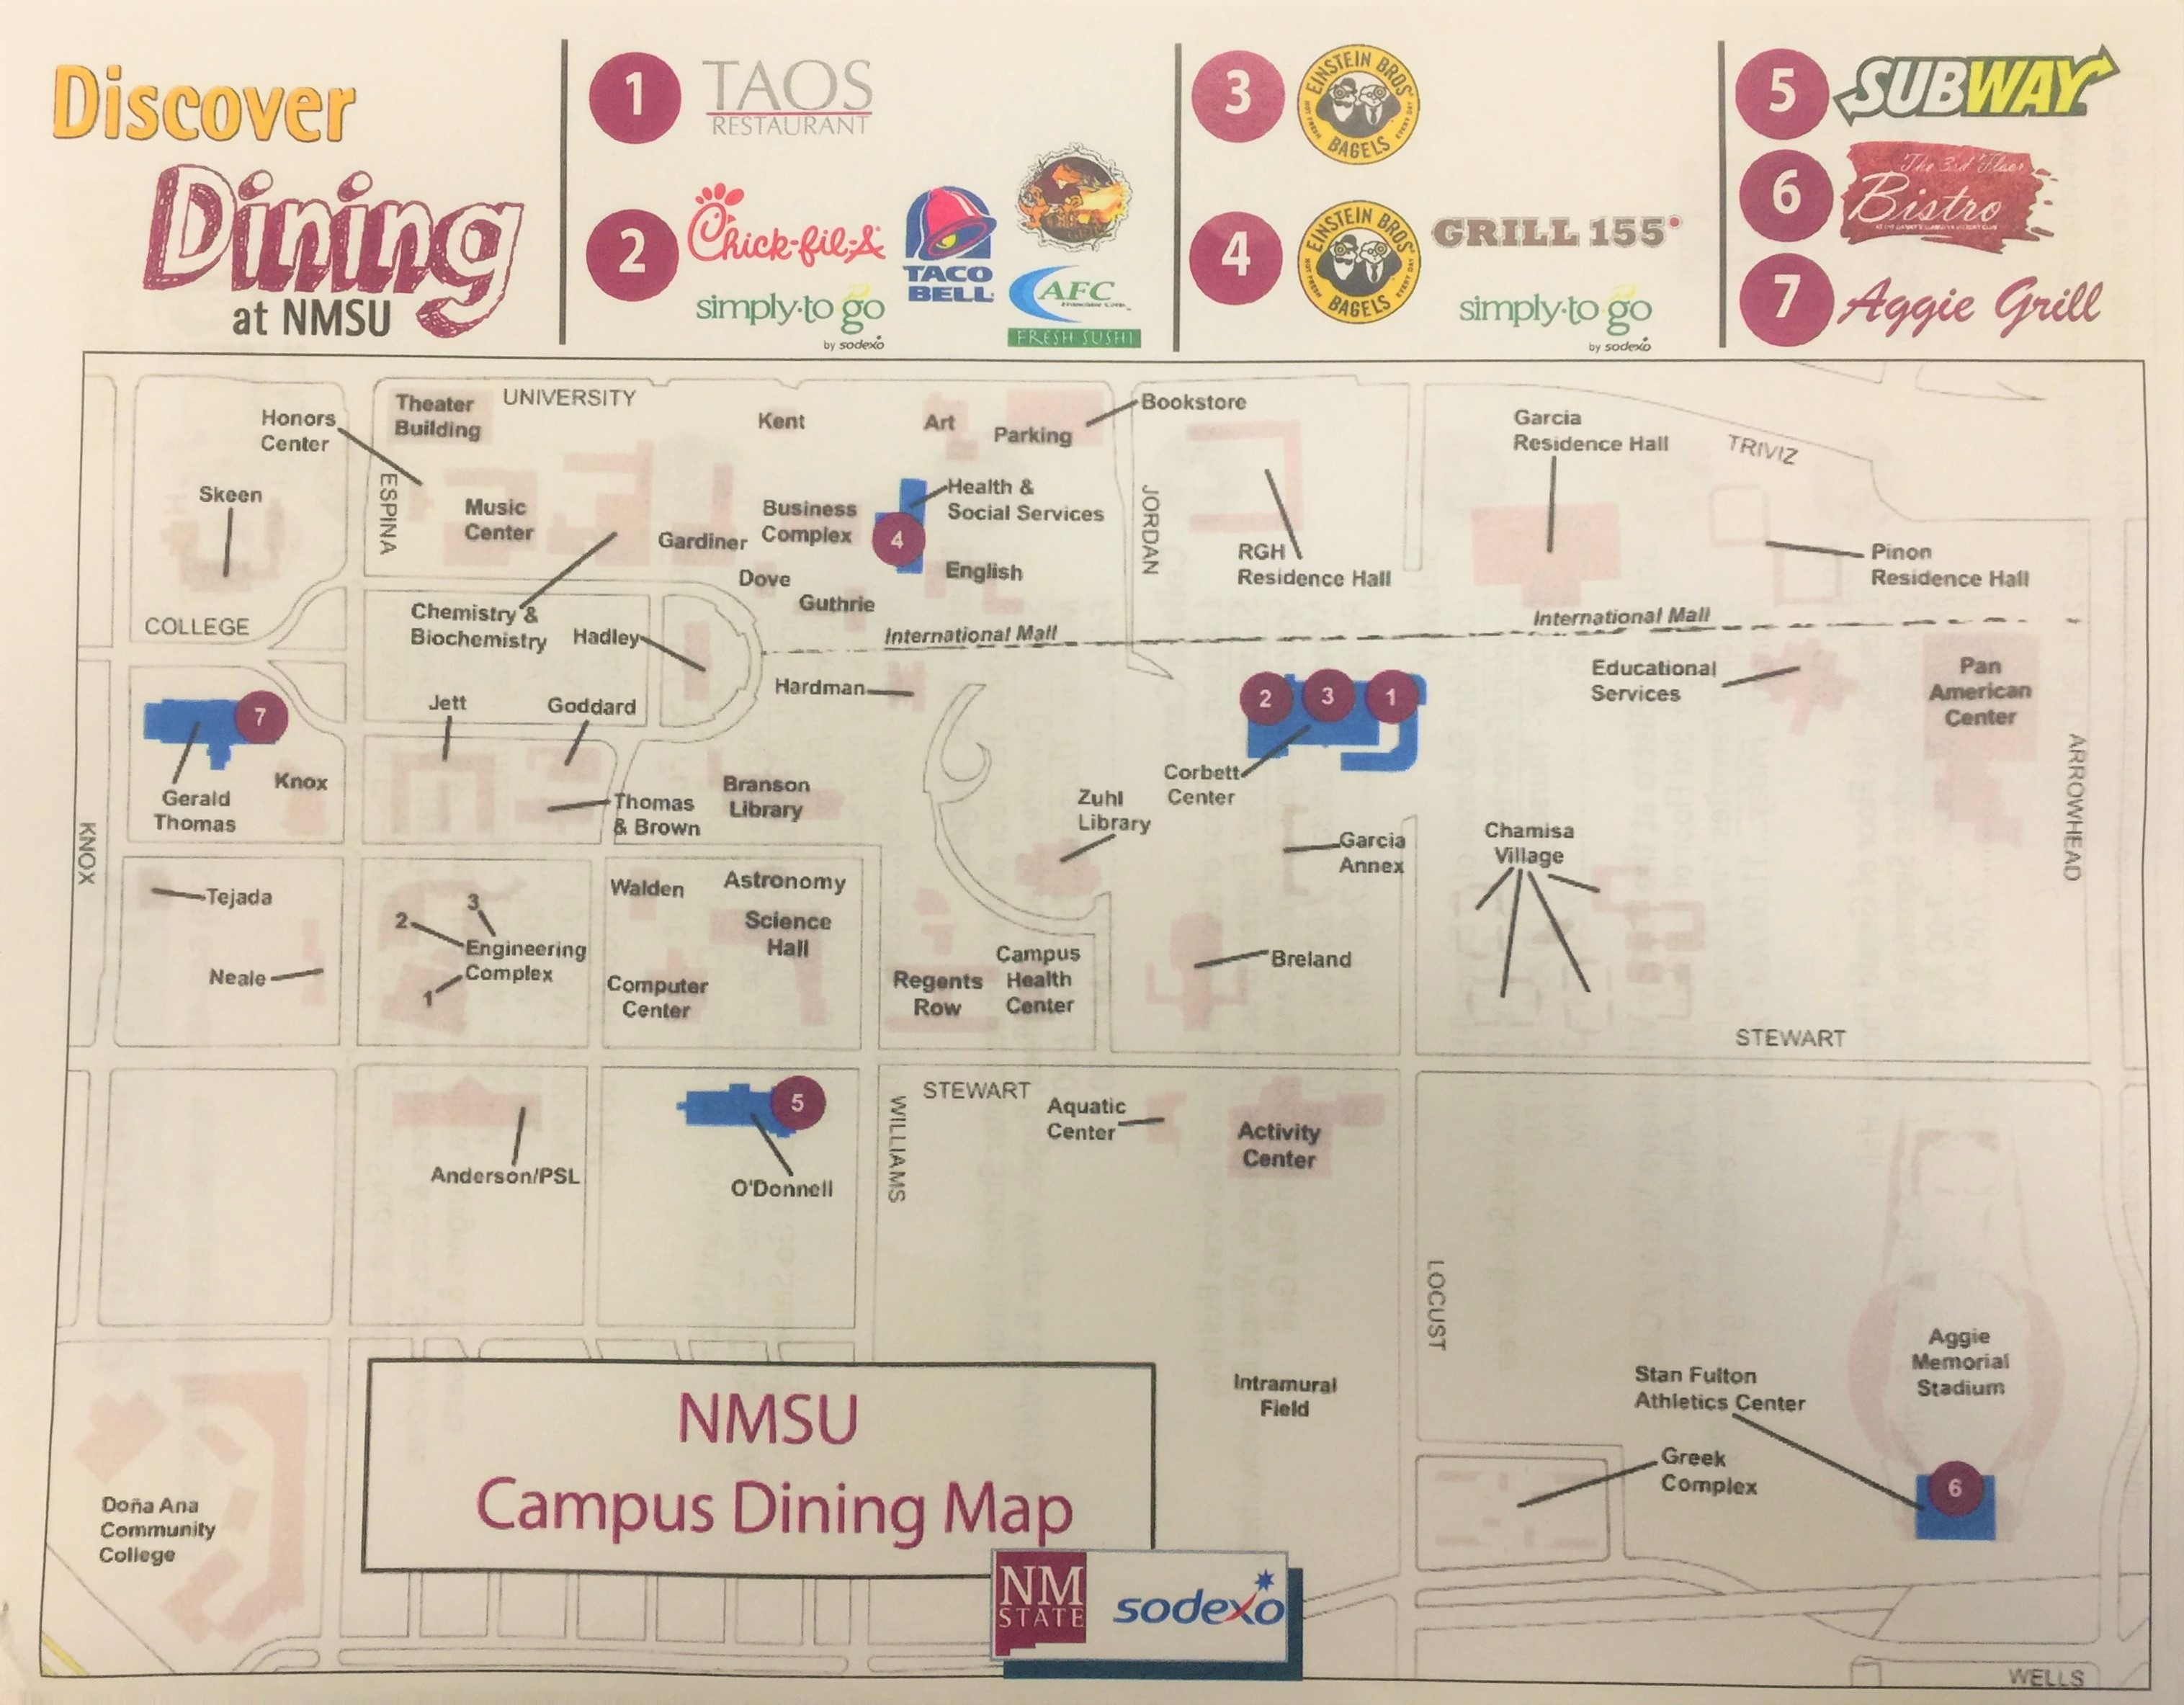 Burrell College Of Osteopathic Medicine Discover Dining At Nmsu